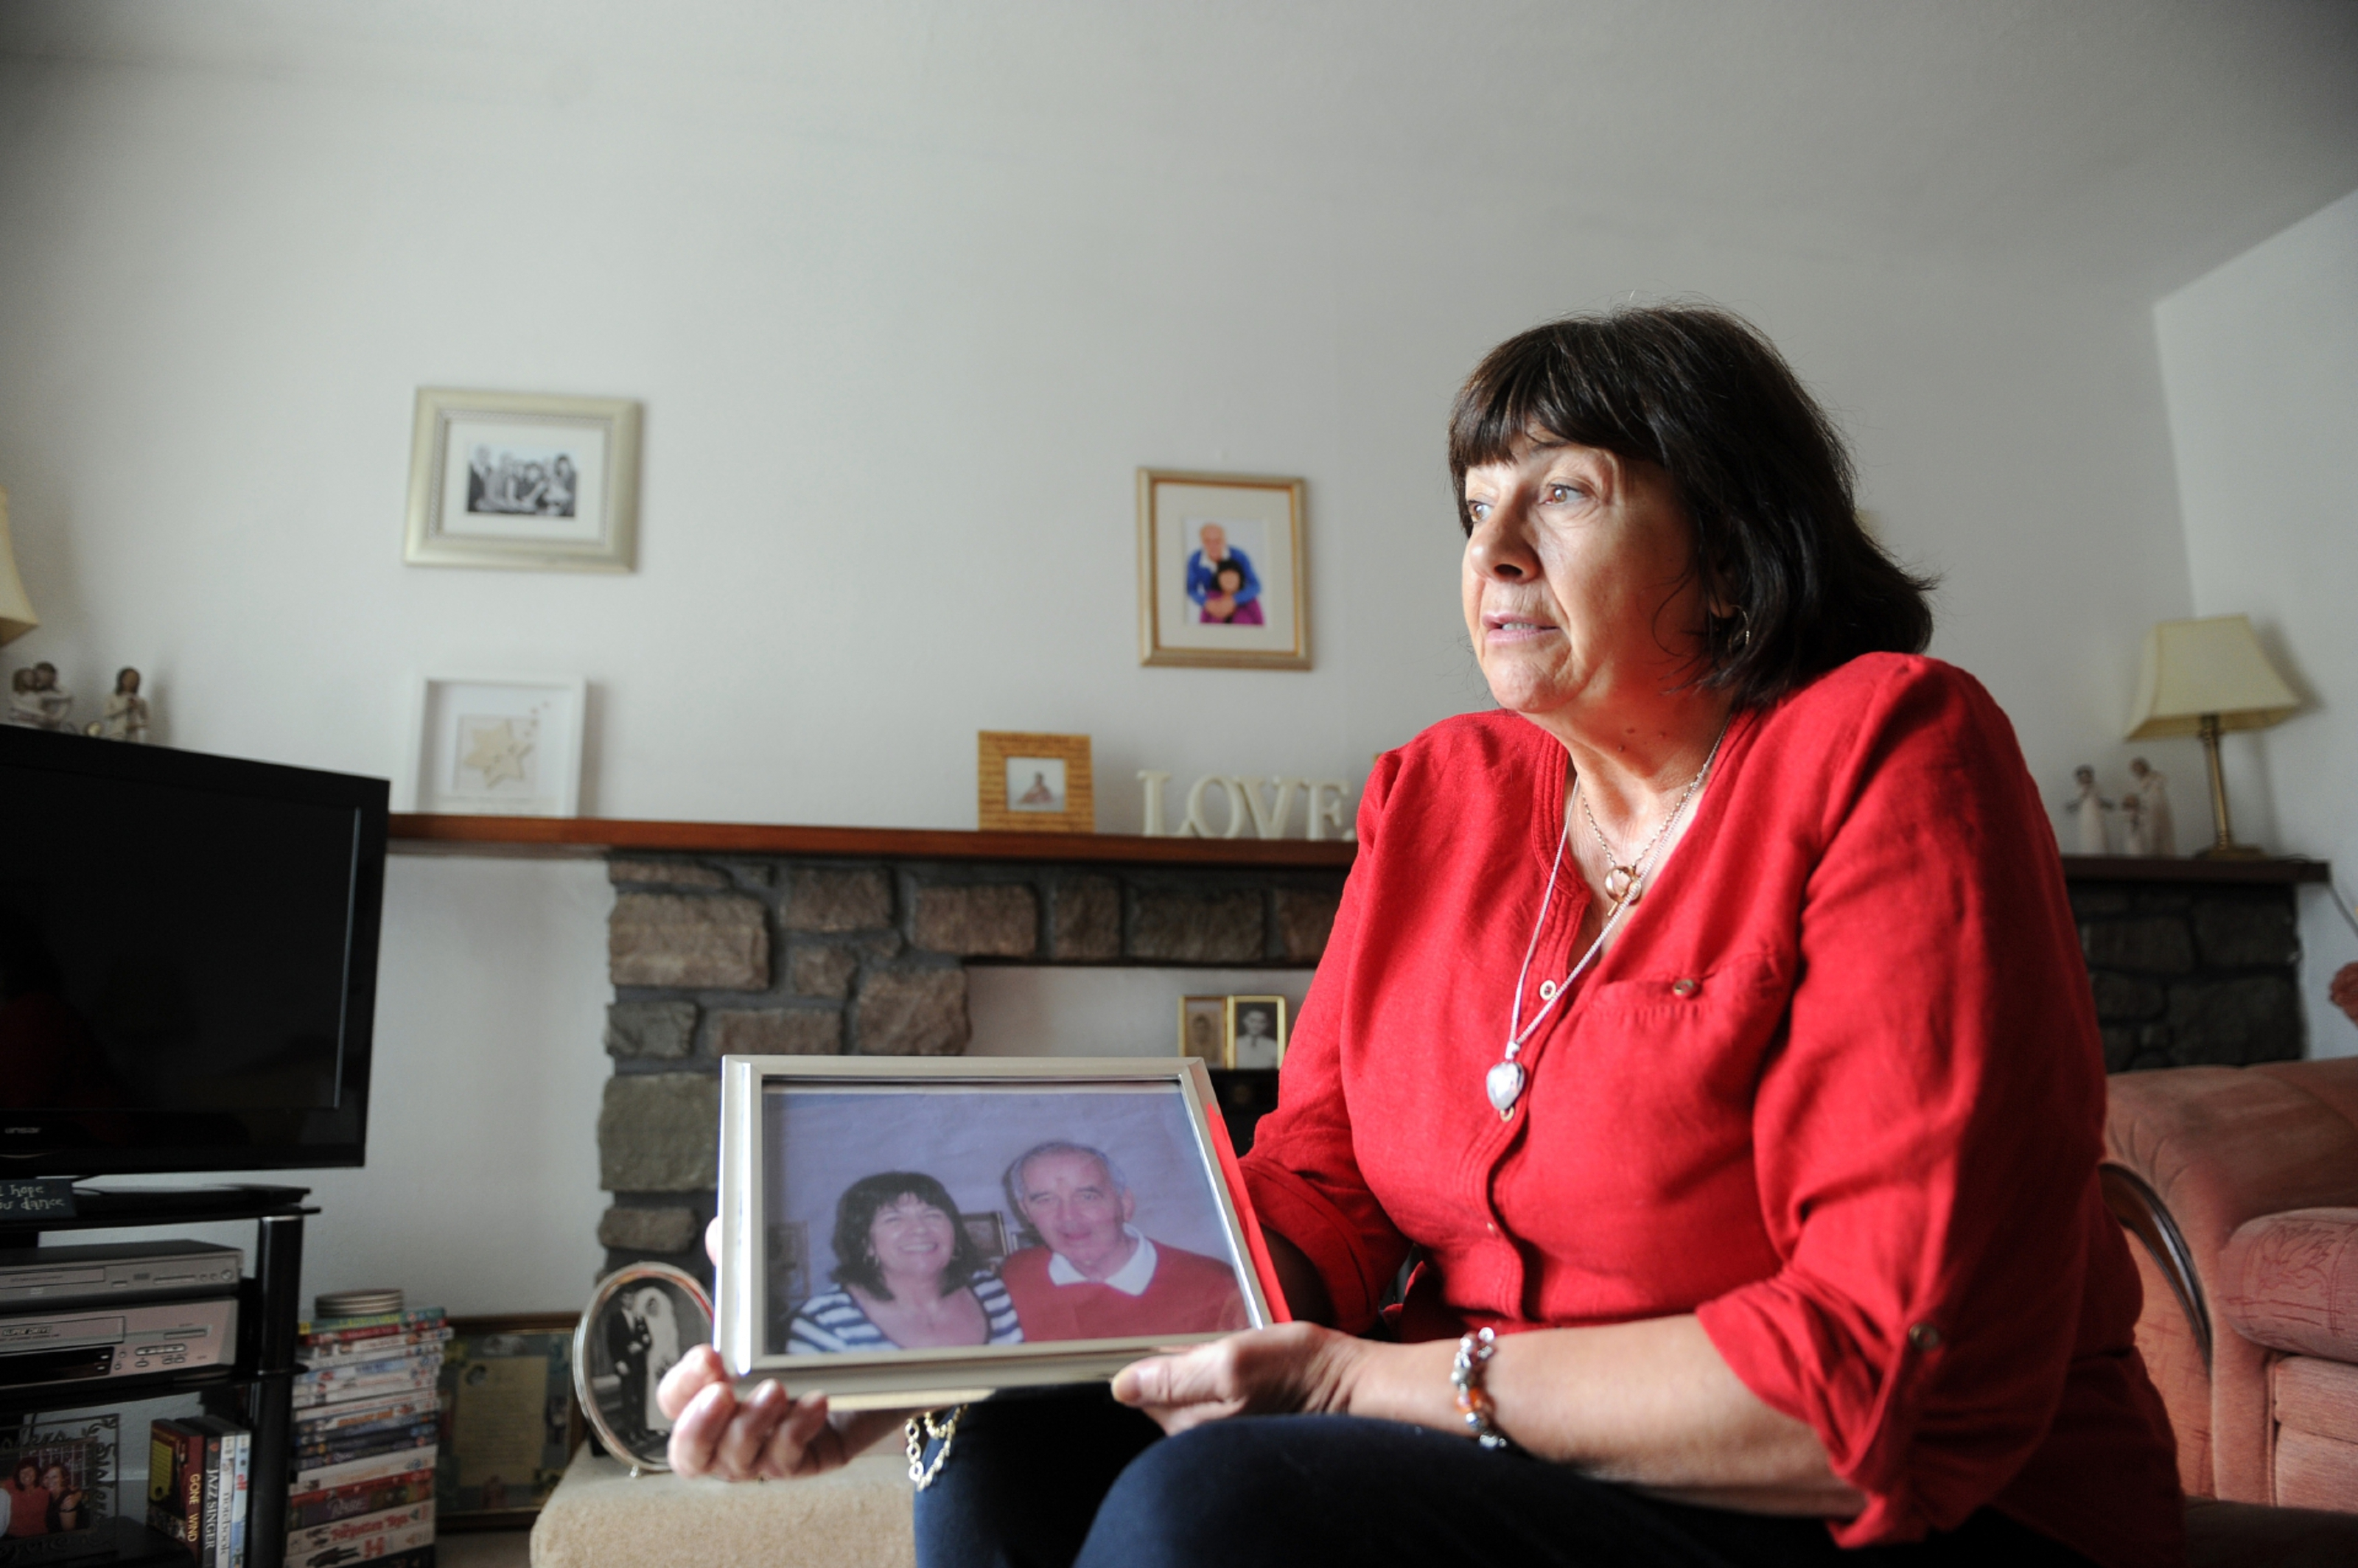 Amanda Kopel at home in Kirriemuir with a treasured photograph.